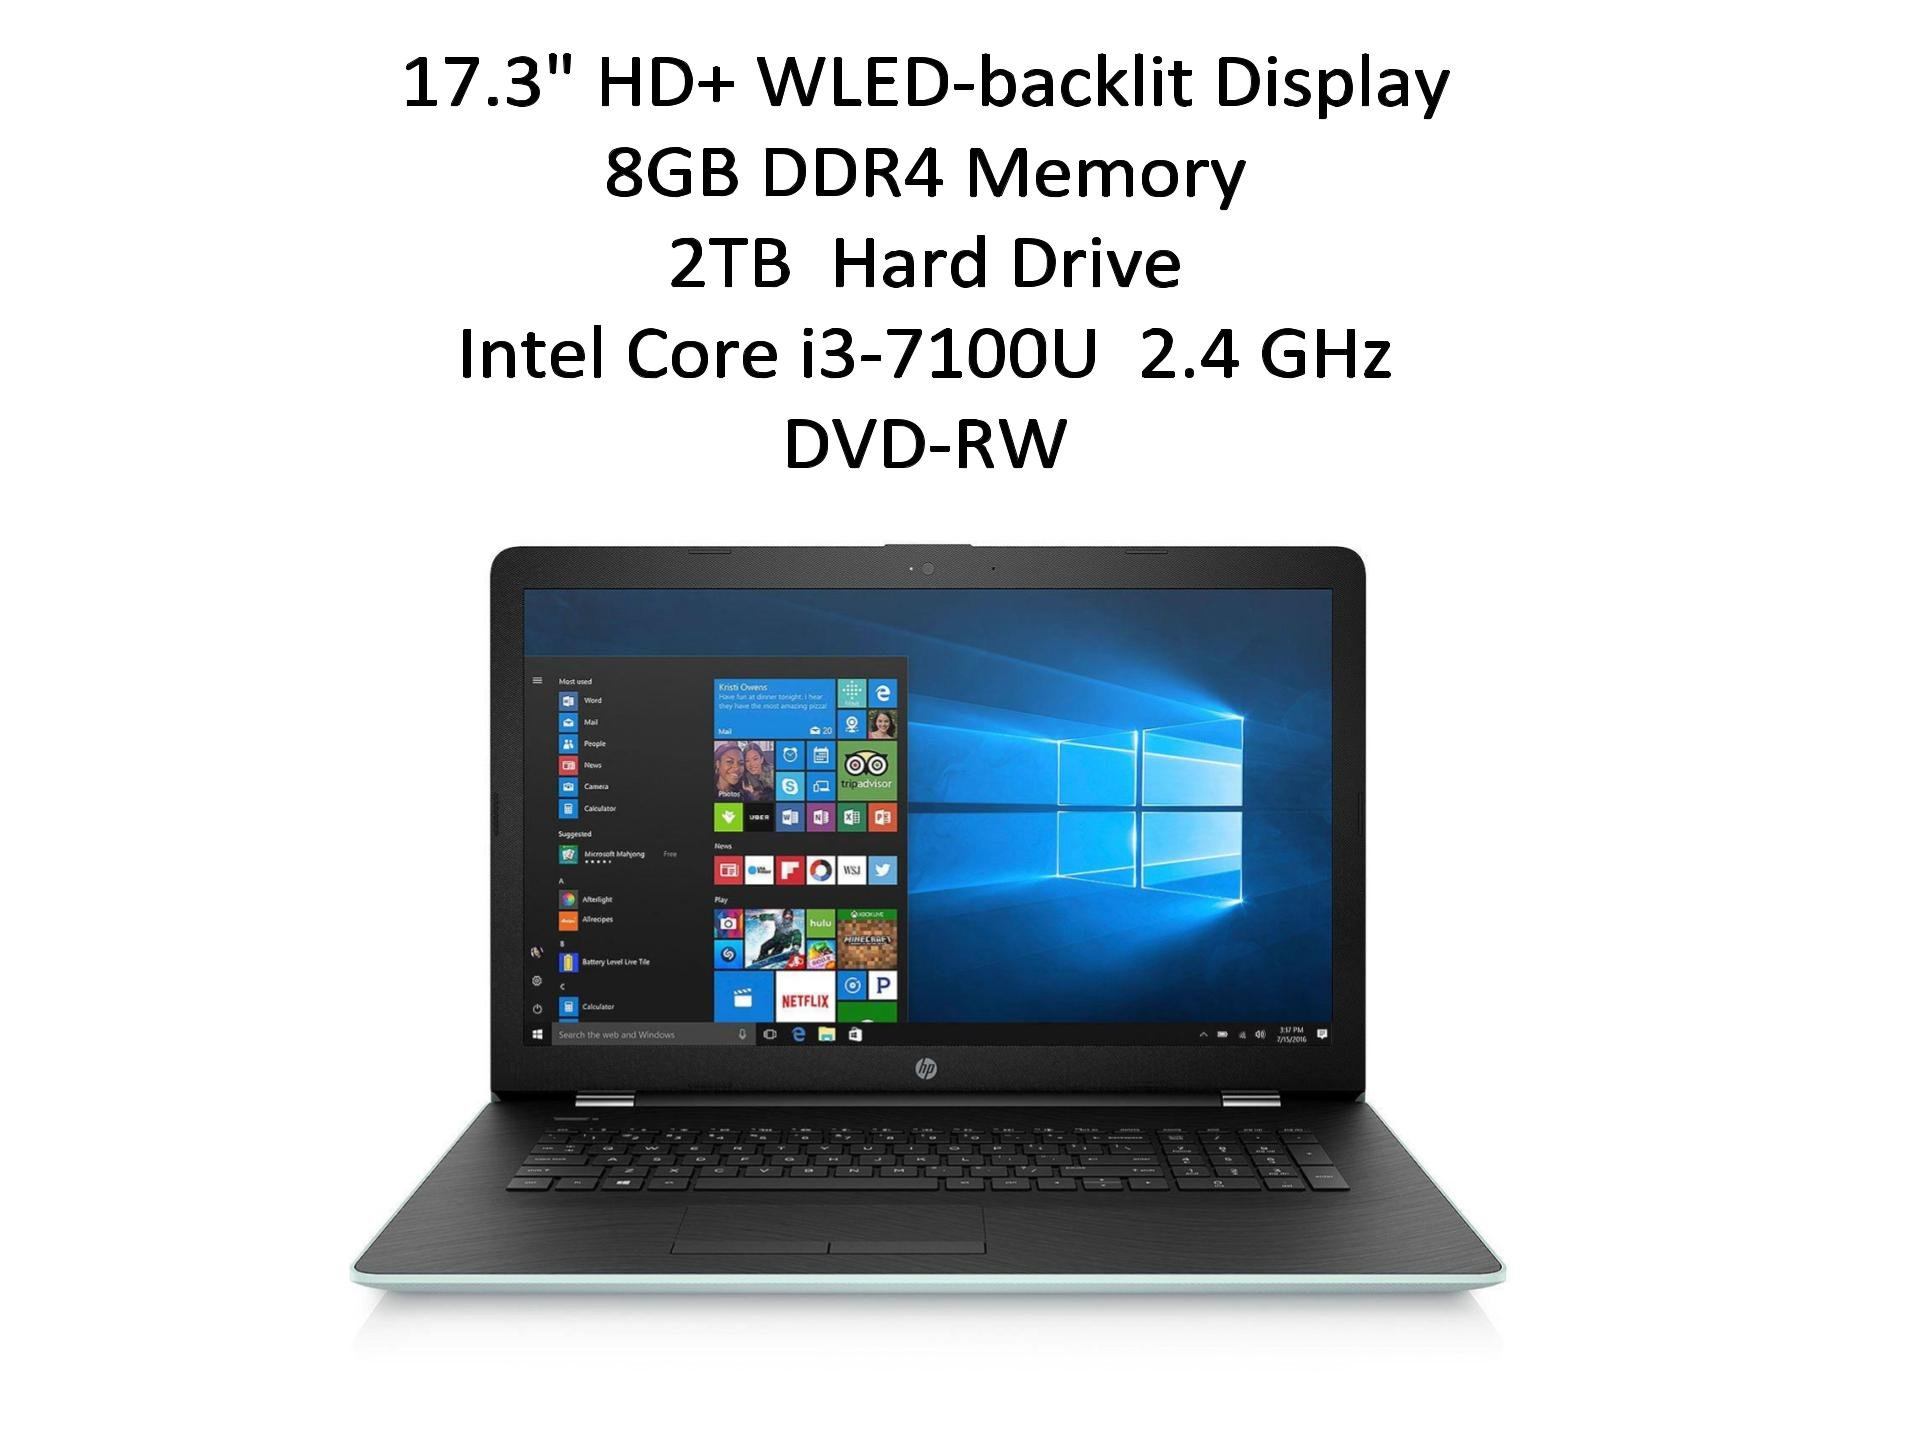 "HP 17.3"" HD+ Notebook (2018 New), Intel Core i3-7100U Processor 2.4 GHz, 8GB Memory, 2TB Hard Drive, Optical Drive, HD Webcam, Backlit Keyboard, Windows 10 Home, Pale Mint 1"